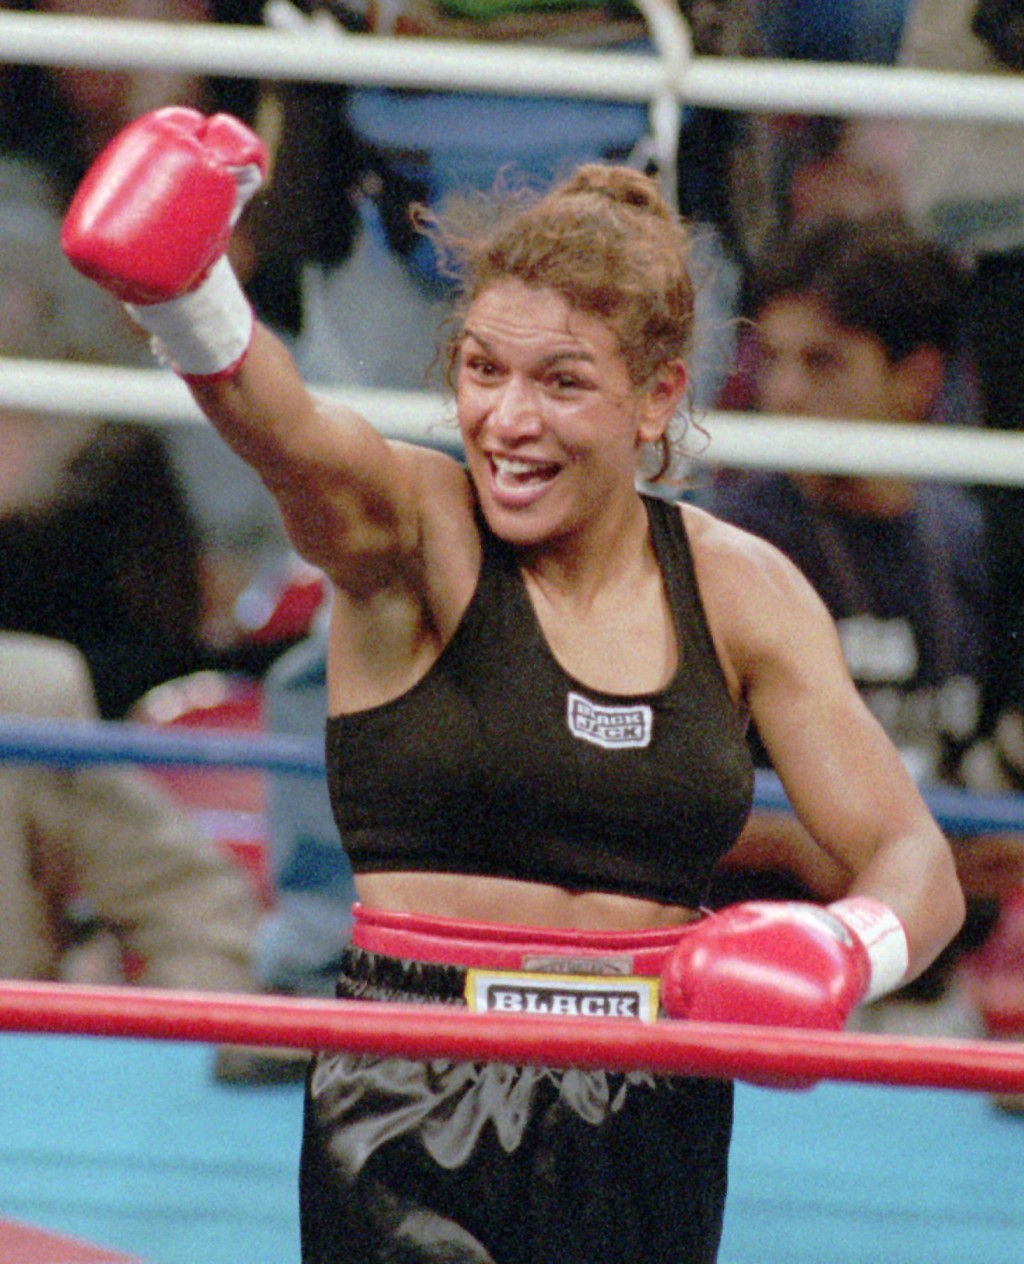 FILE - In this Sept. 13, 1997, file photo, Lucia Rijker, of the Netherlands, gestures after beating Andrea Deshong in a boxing match in Las Vegas. Rij...